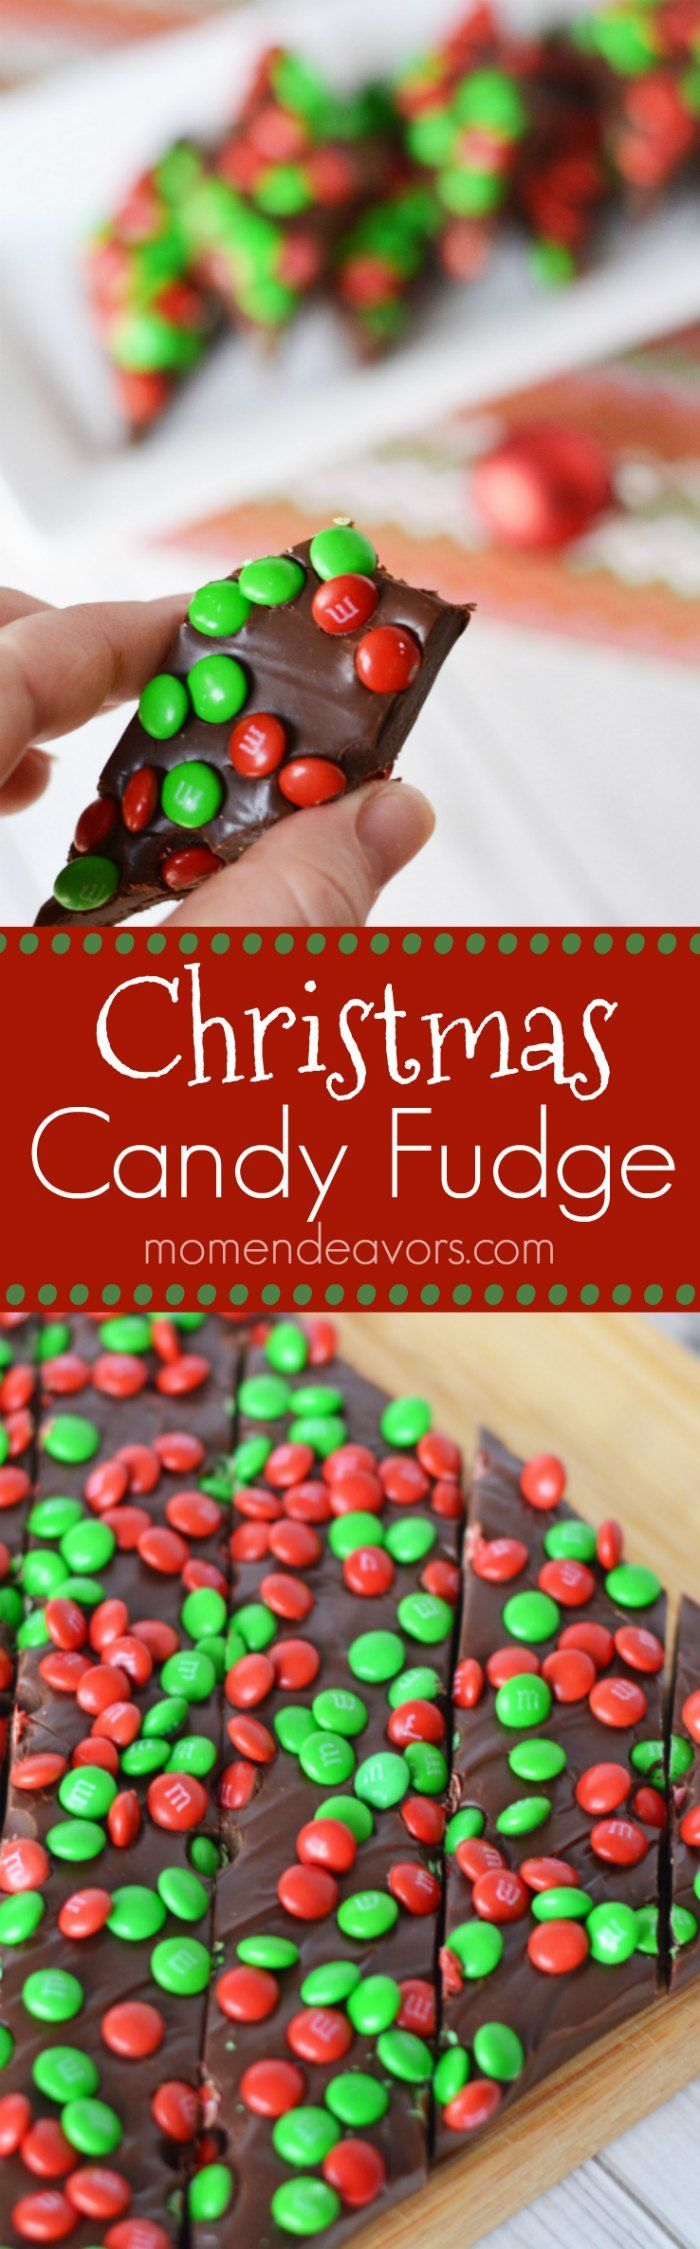 Christmas Candy Fudge - a deliciously easy holiday treat!